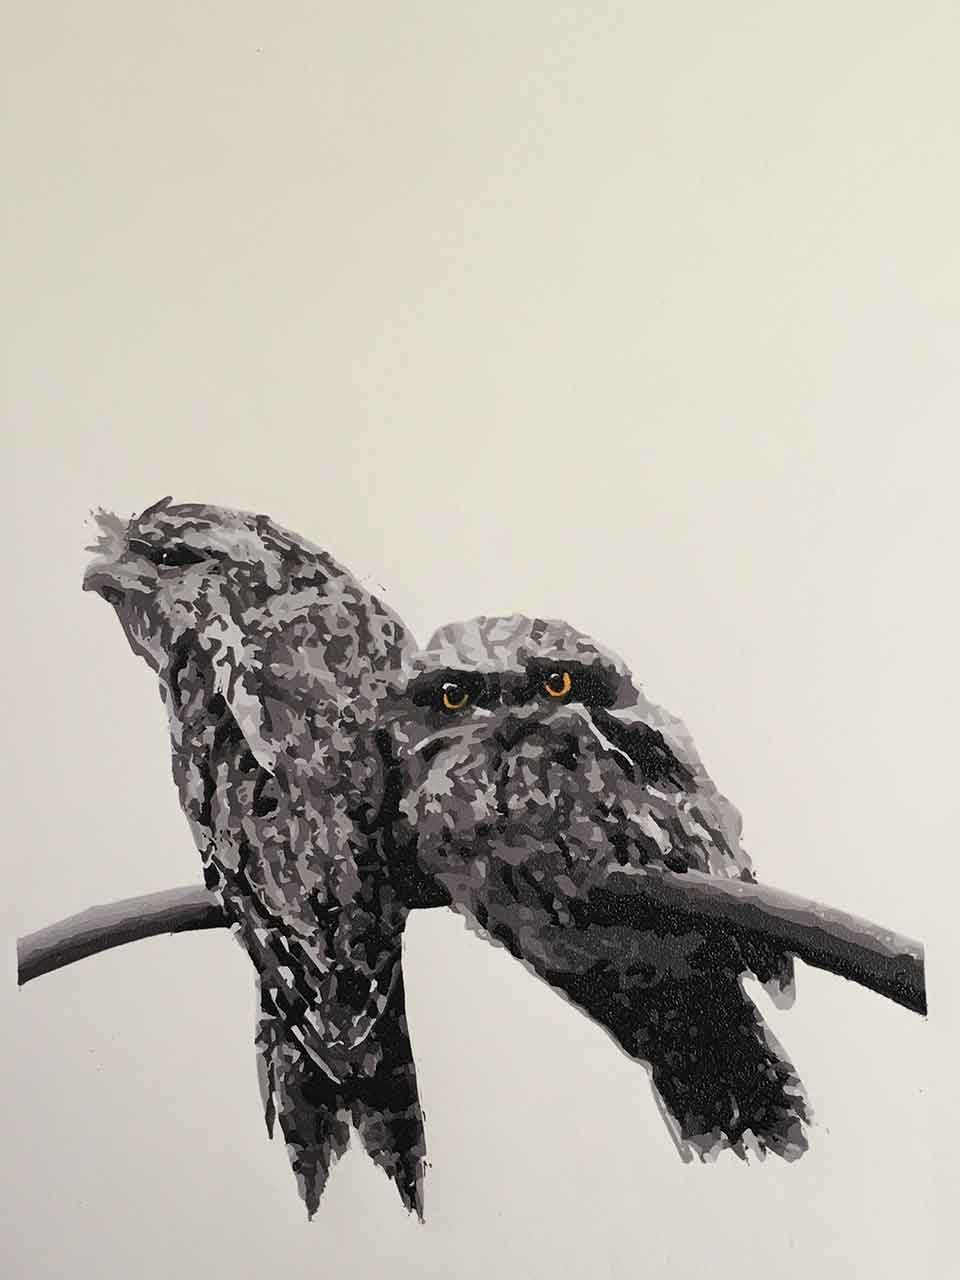 Tawny Frogmouth mother and chick reductive linoprint - finished